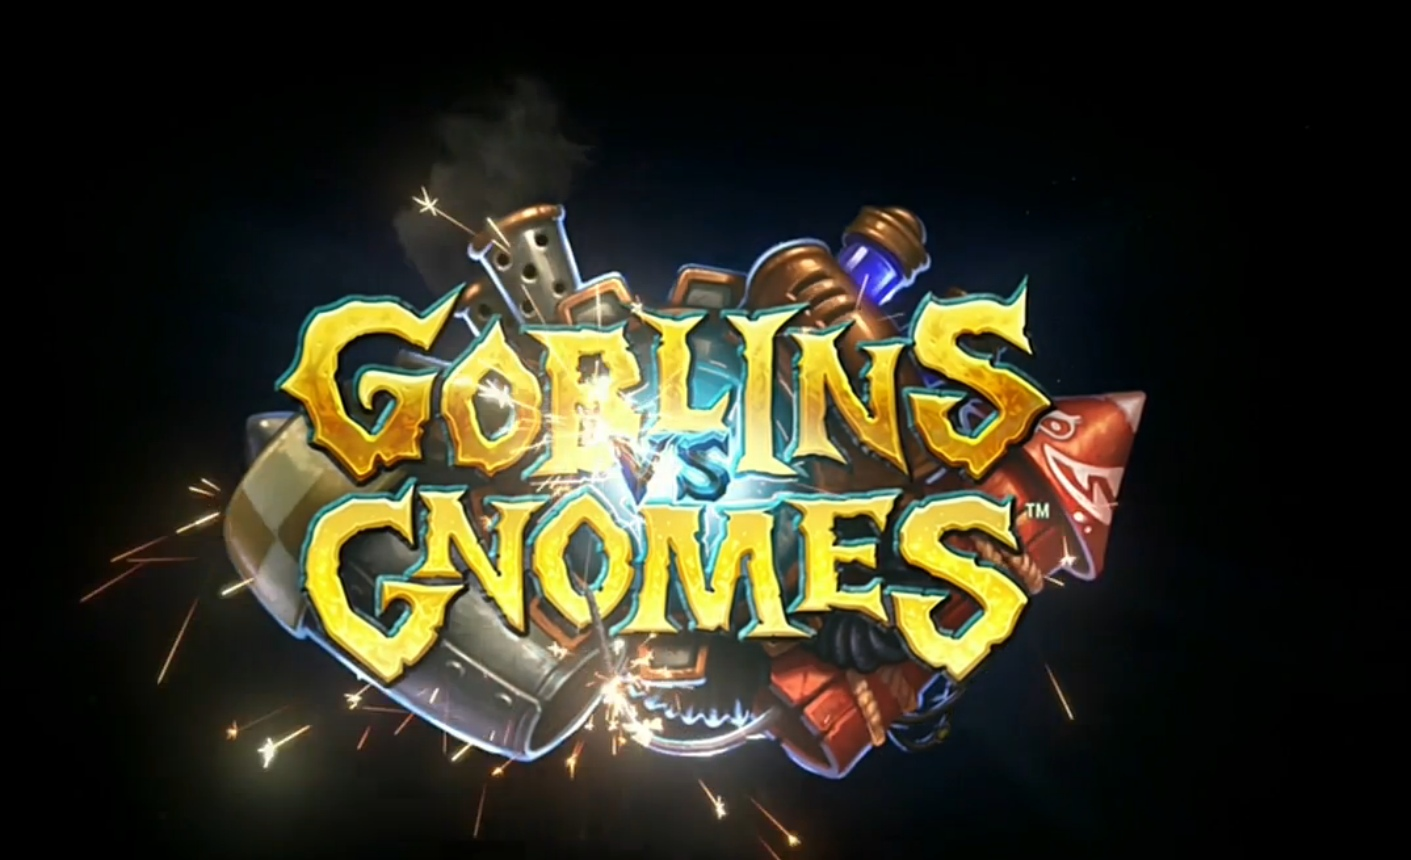 First Hearthstone Expansion Announced - Goblins vs Gnomes